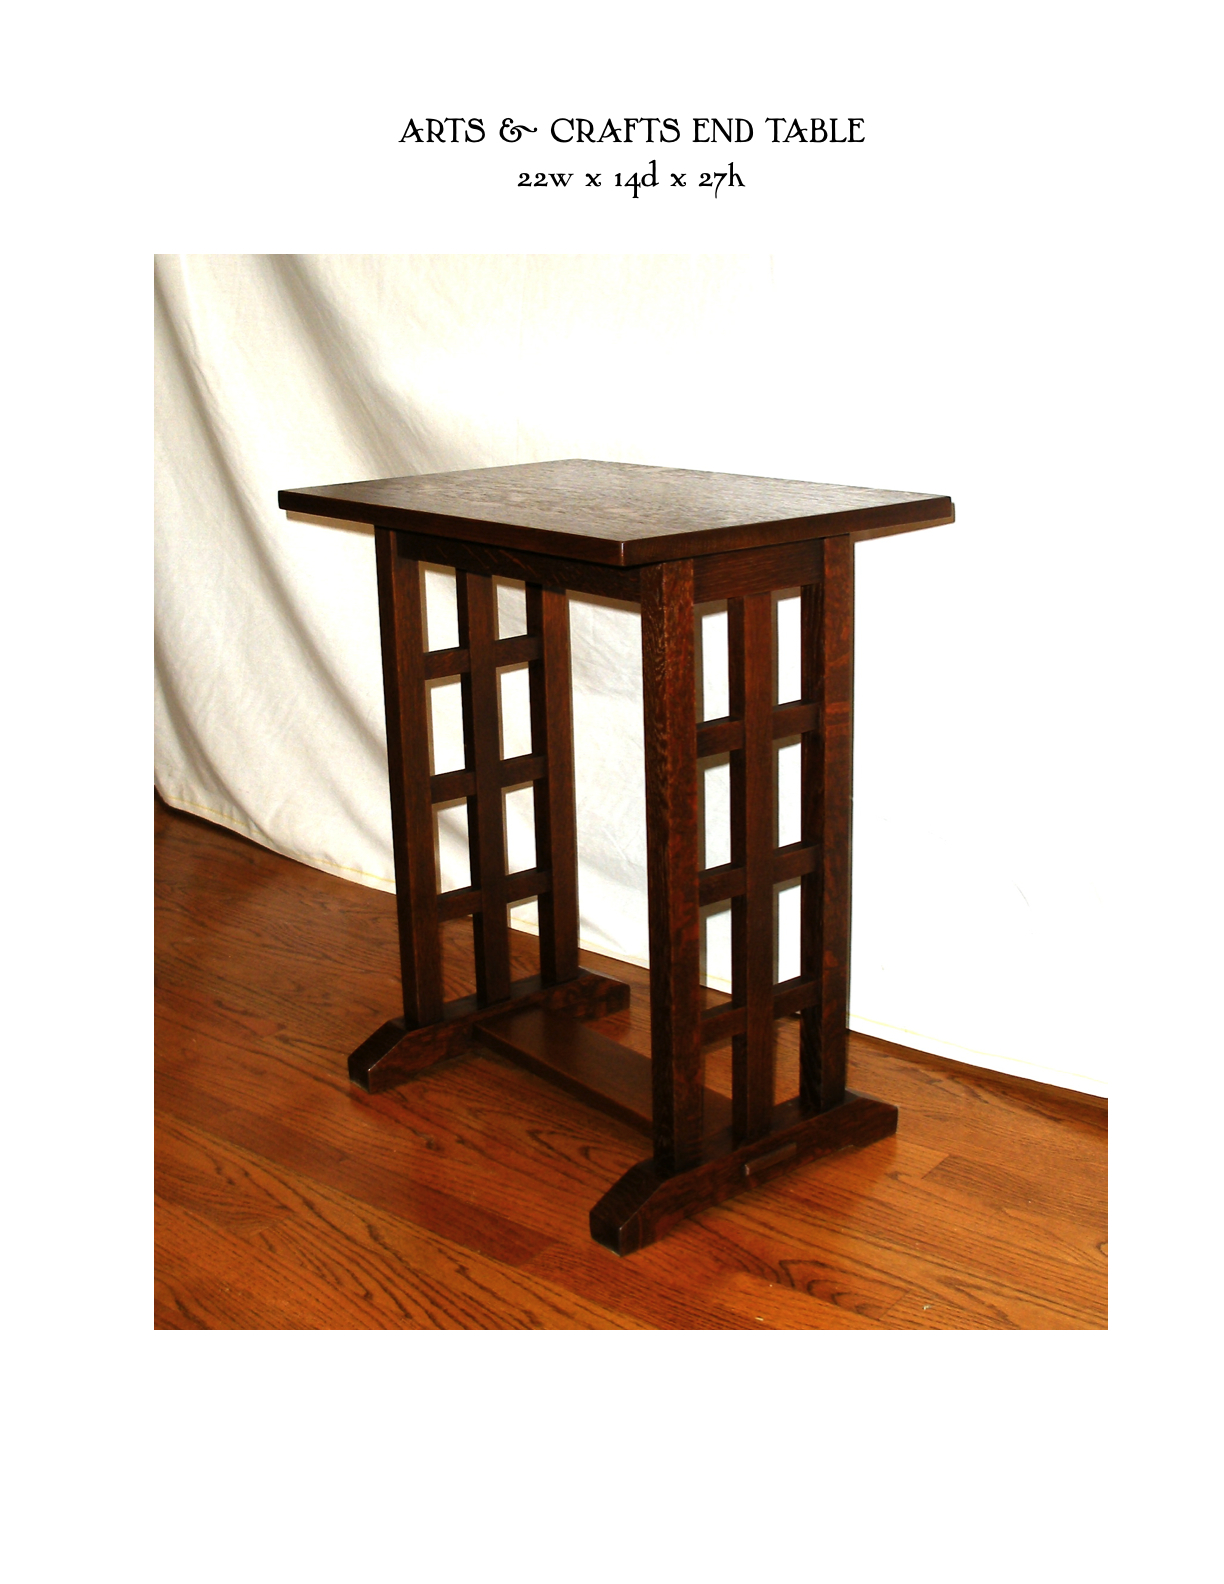 ARTS AND CRAFTS END TABLE | MIKE DEVLIN FURNITURE DESIGN